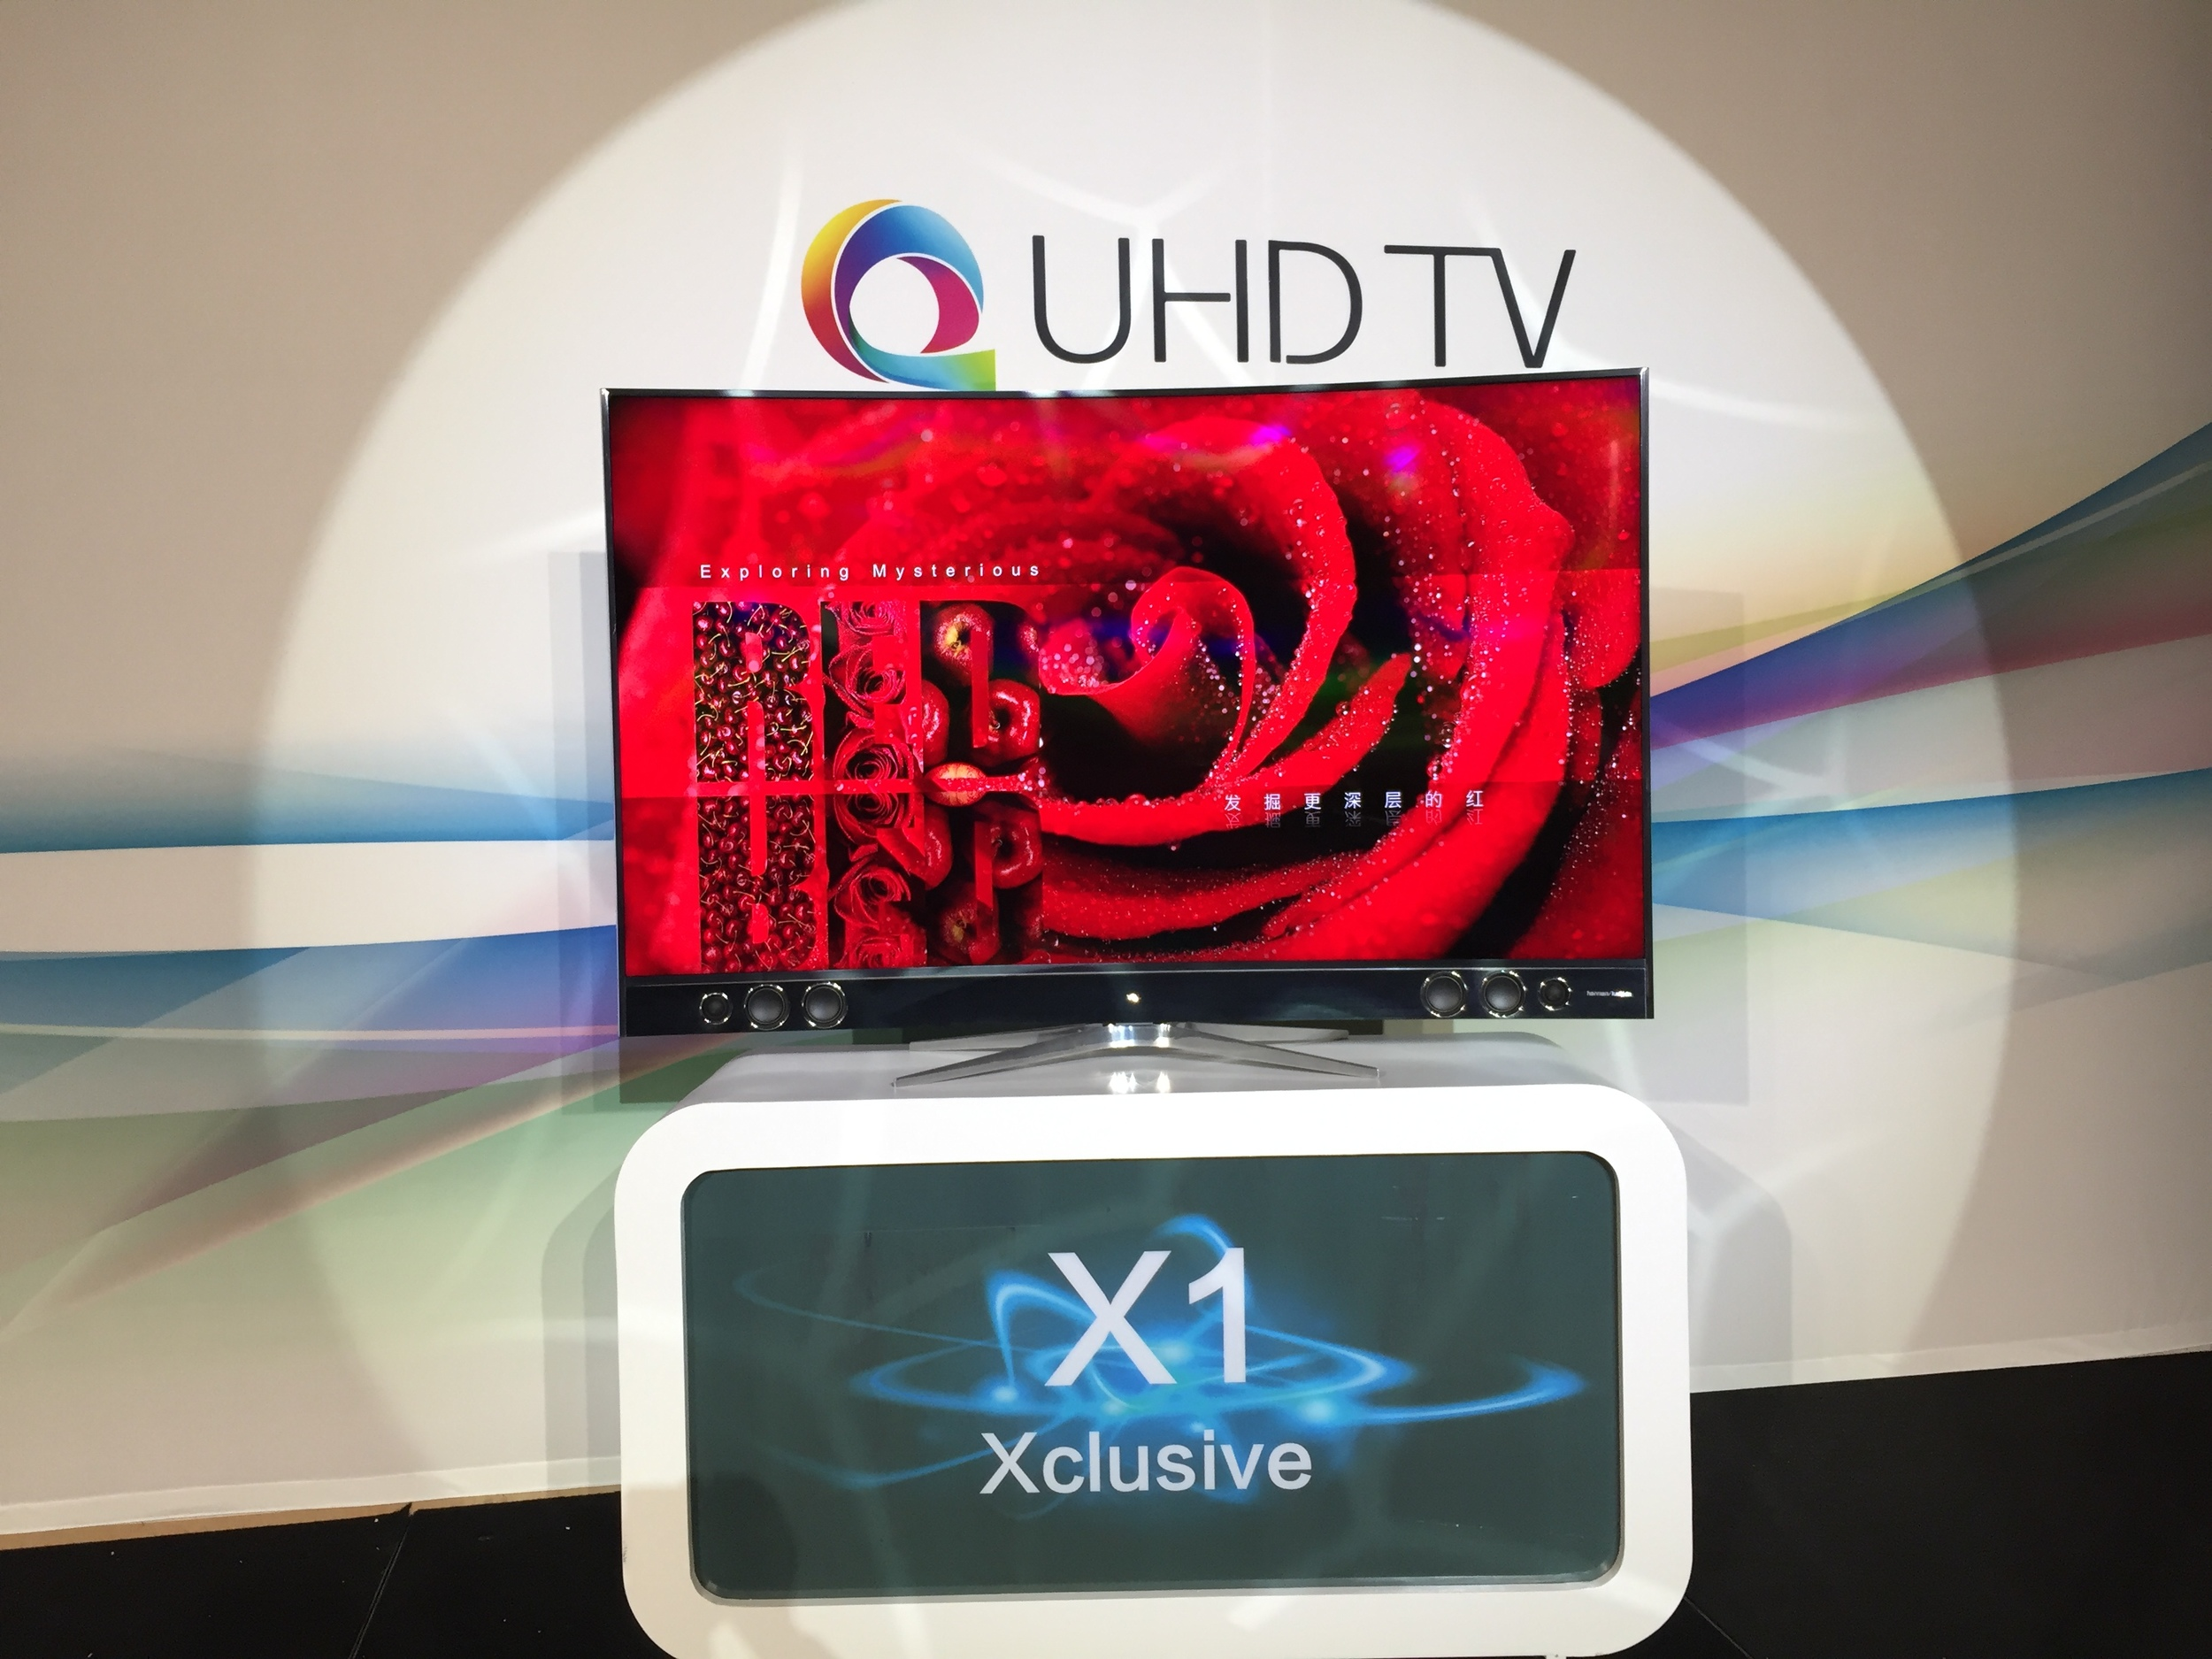 TCL QUHD TV with Nanosys Quantum Dot Technology at CES 2016